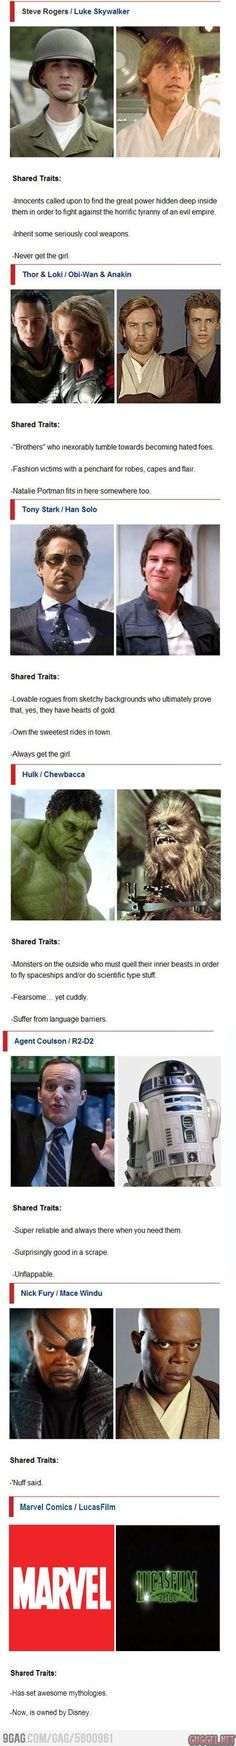 Star Wars vs The Avengers